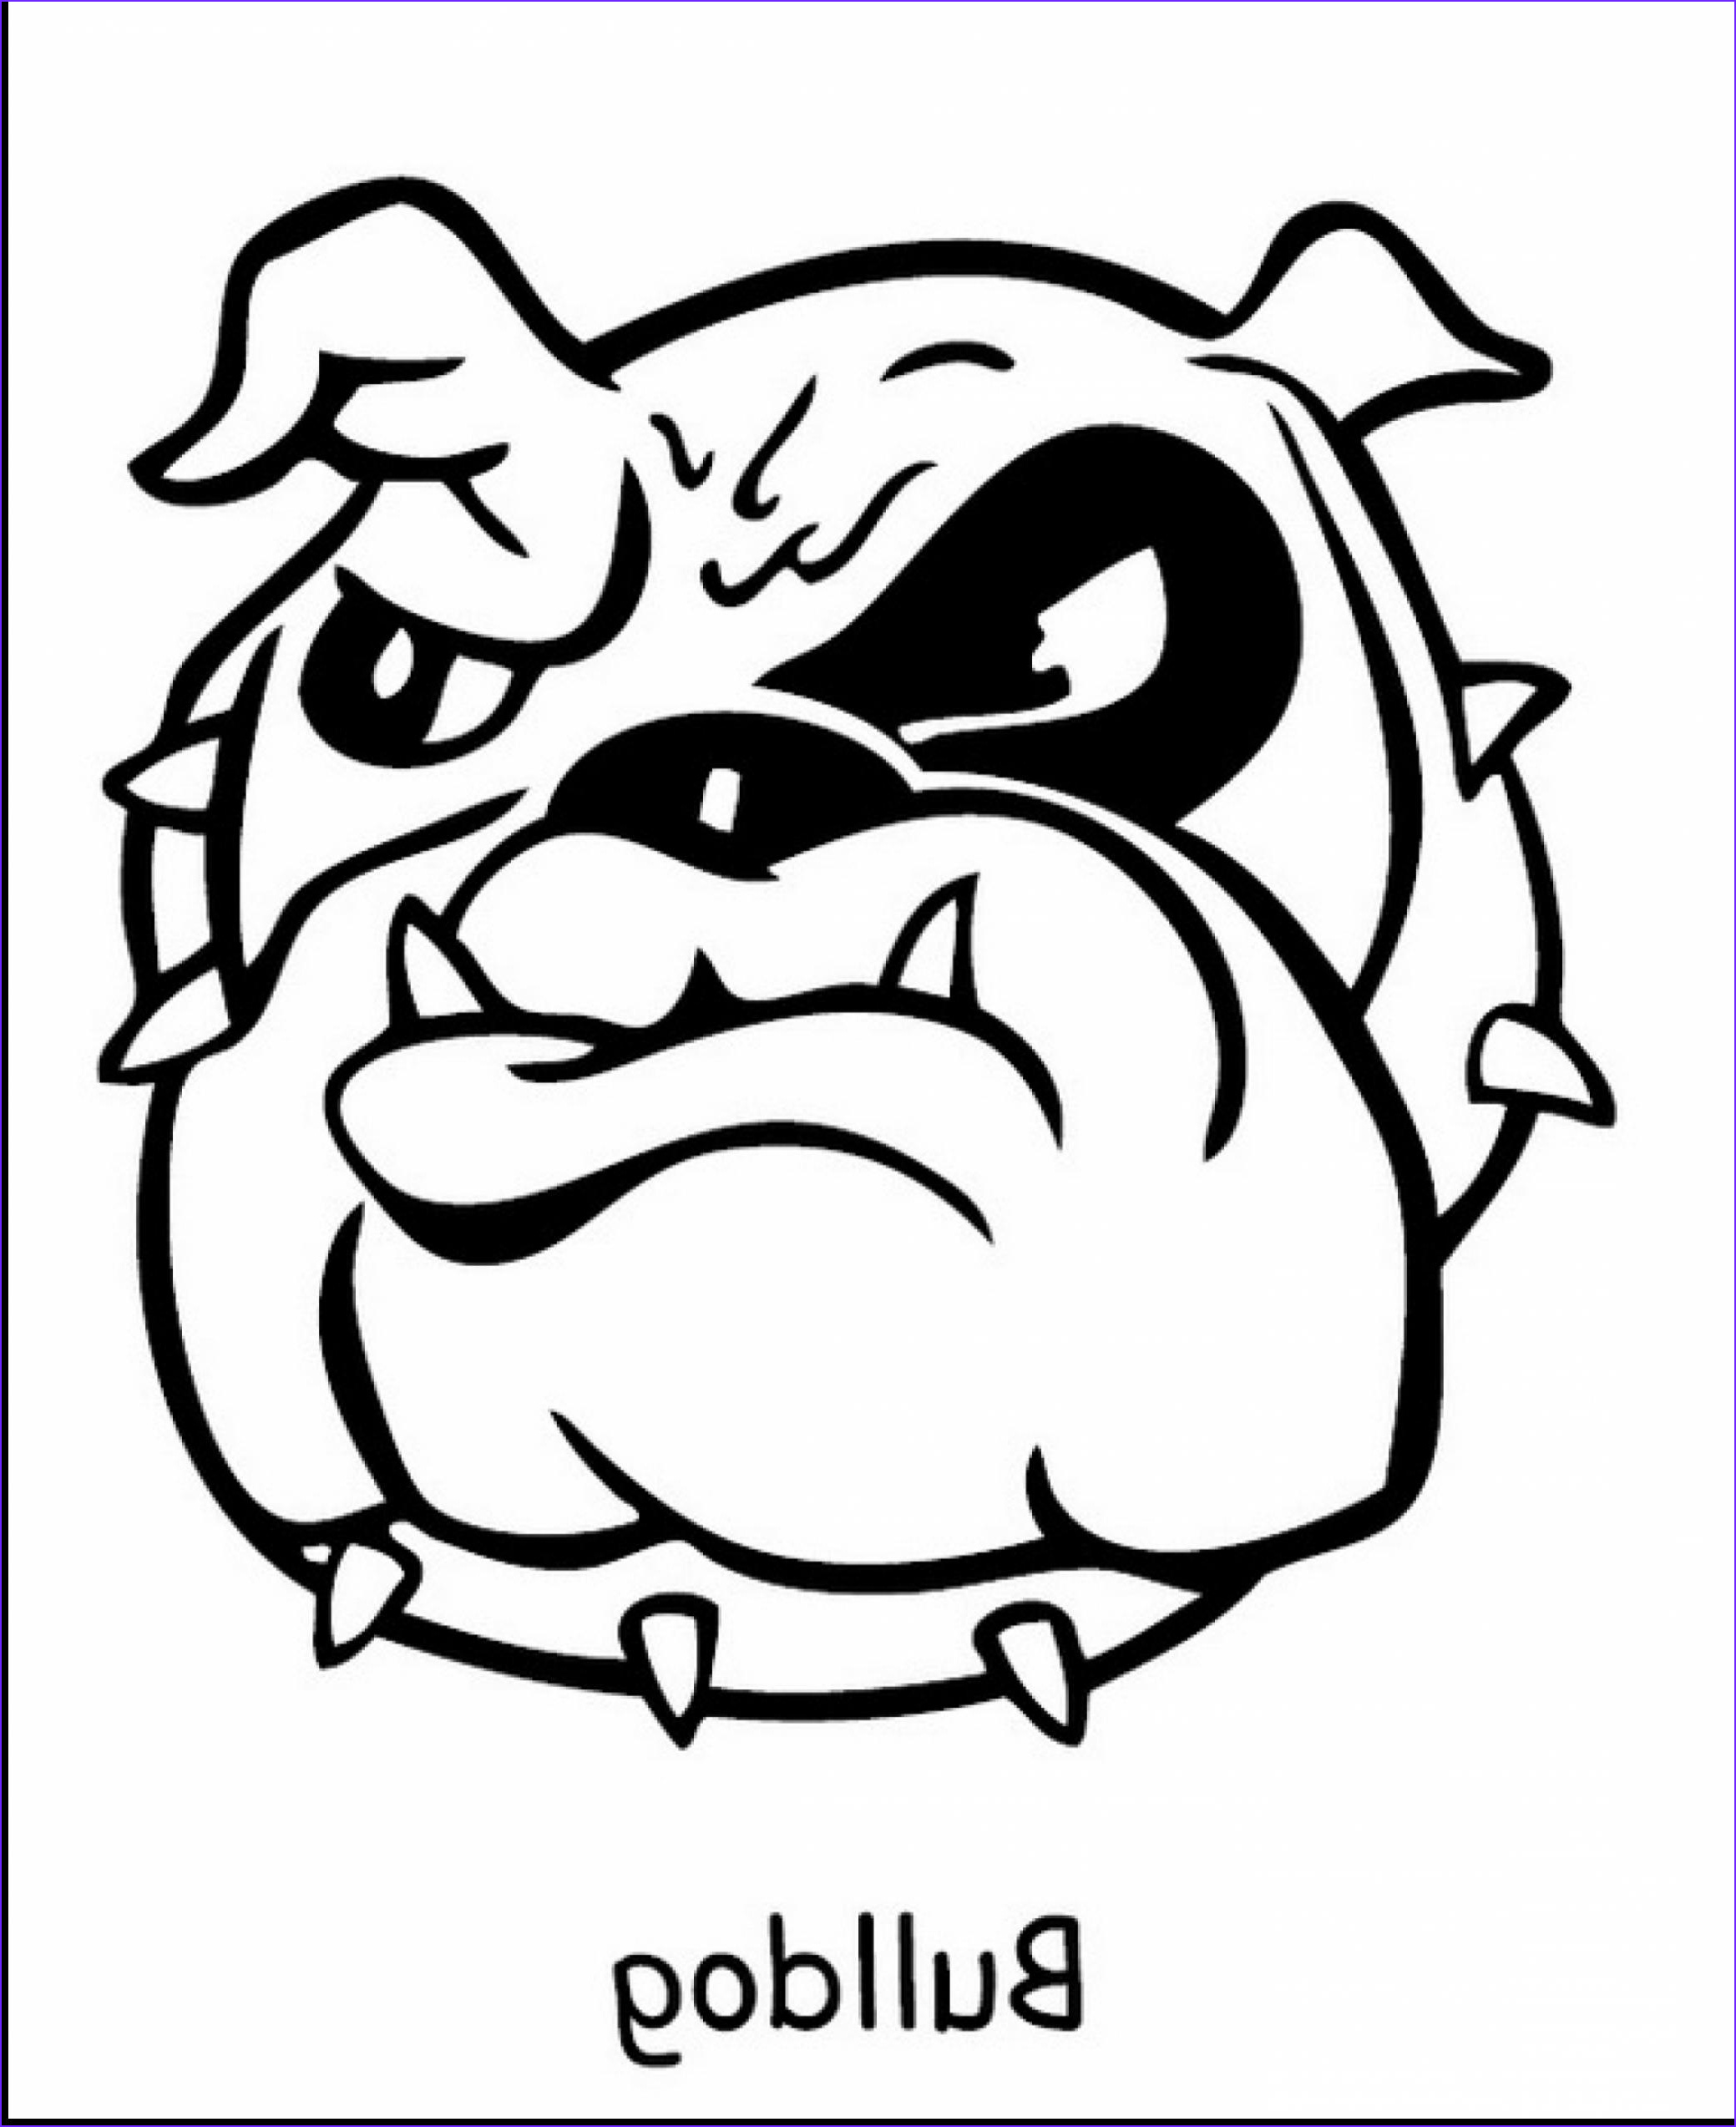 Bull Dog Coloring Pages Luxury Stock American Bulldog Drawing at Getdrawings